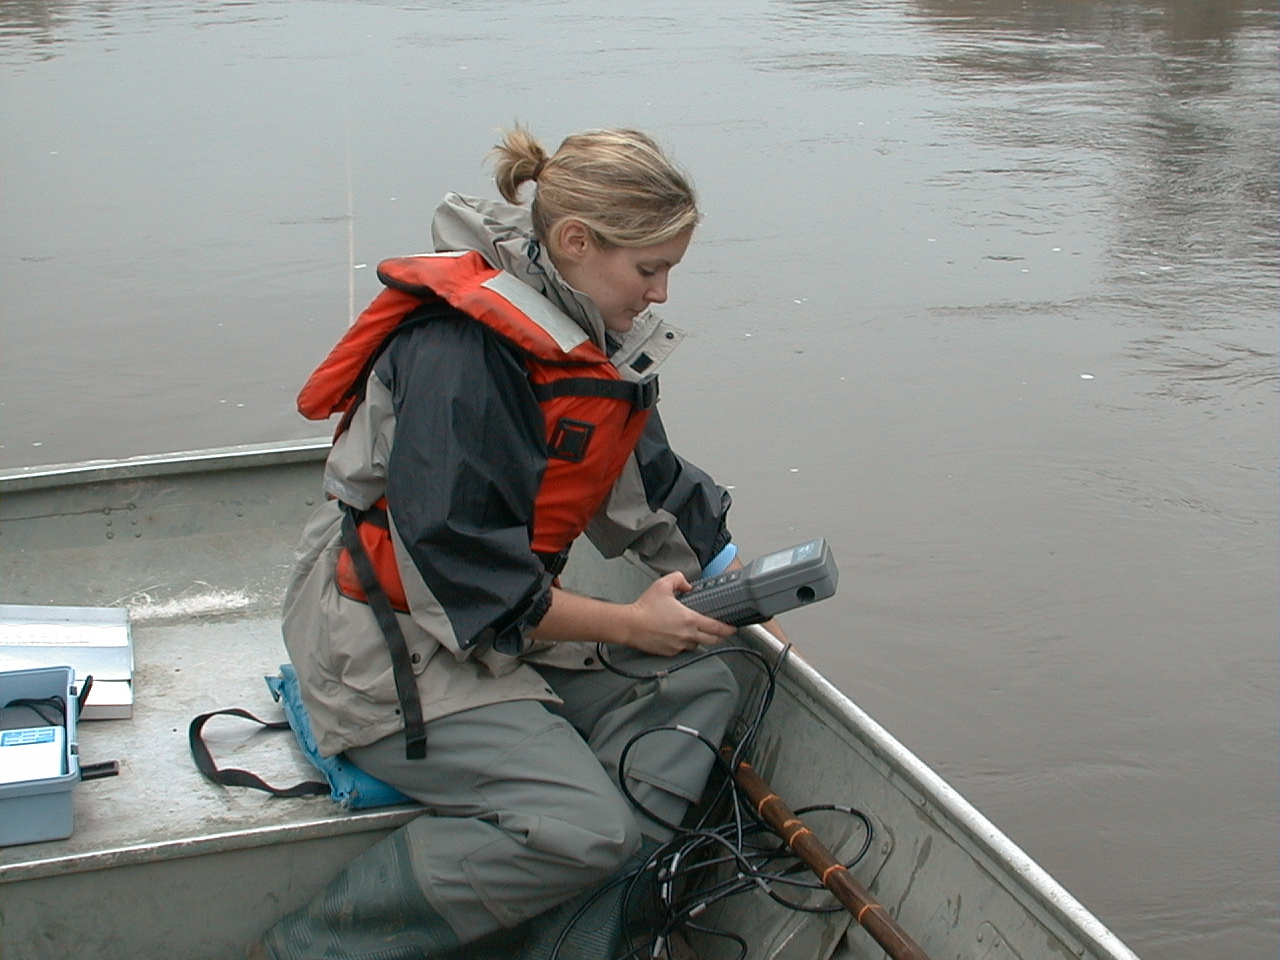 Measuring water quality in the Roanoke River basin